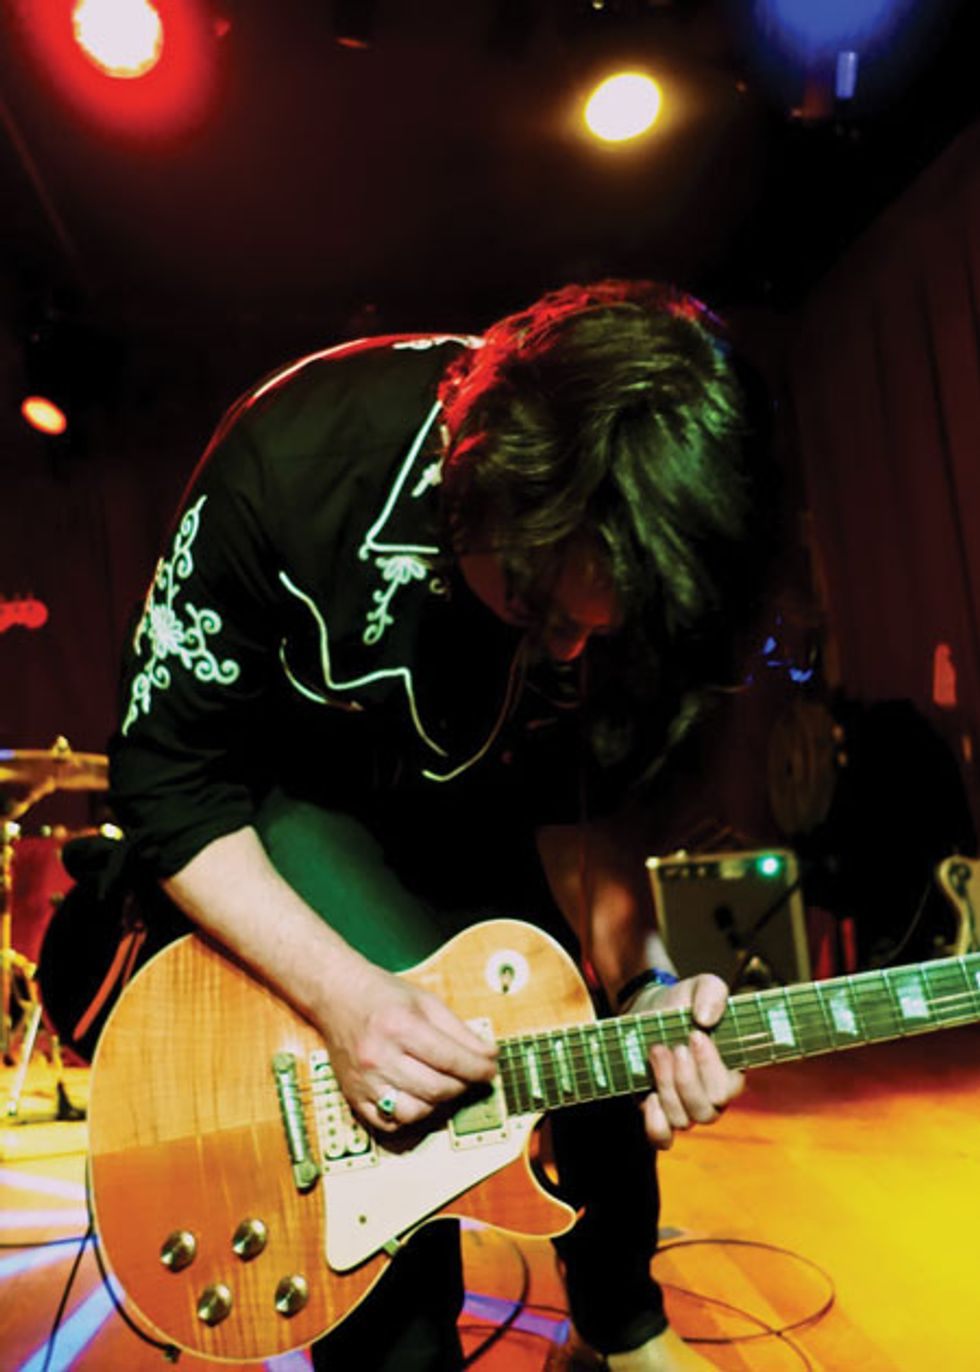 The codependent guitarist the art of being a sideman premier guitar eric ambel plays his chambered 55 style les paul with the del lords at the cbgbs festival in nyc photo by linda rizzo solutioingenieria Gallery